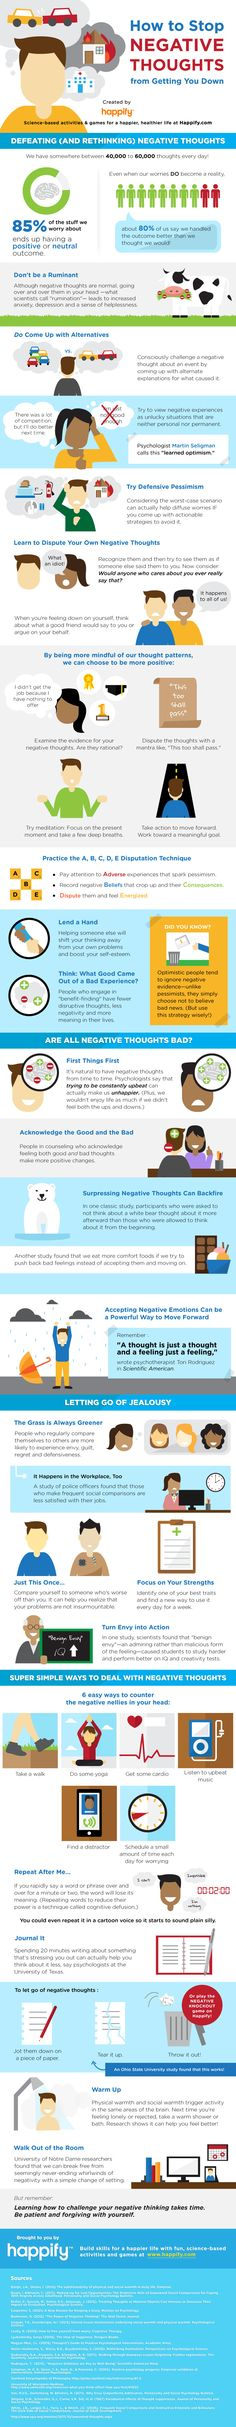 How To Stop Negative Thoughts From Getting You Down #infographic